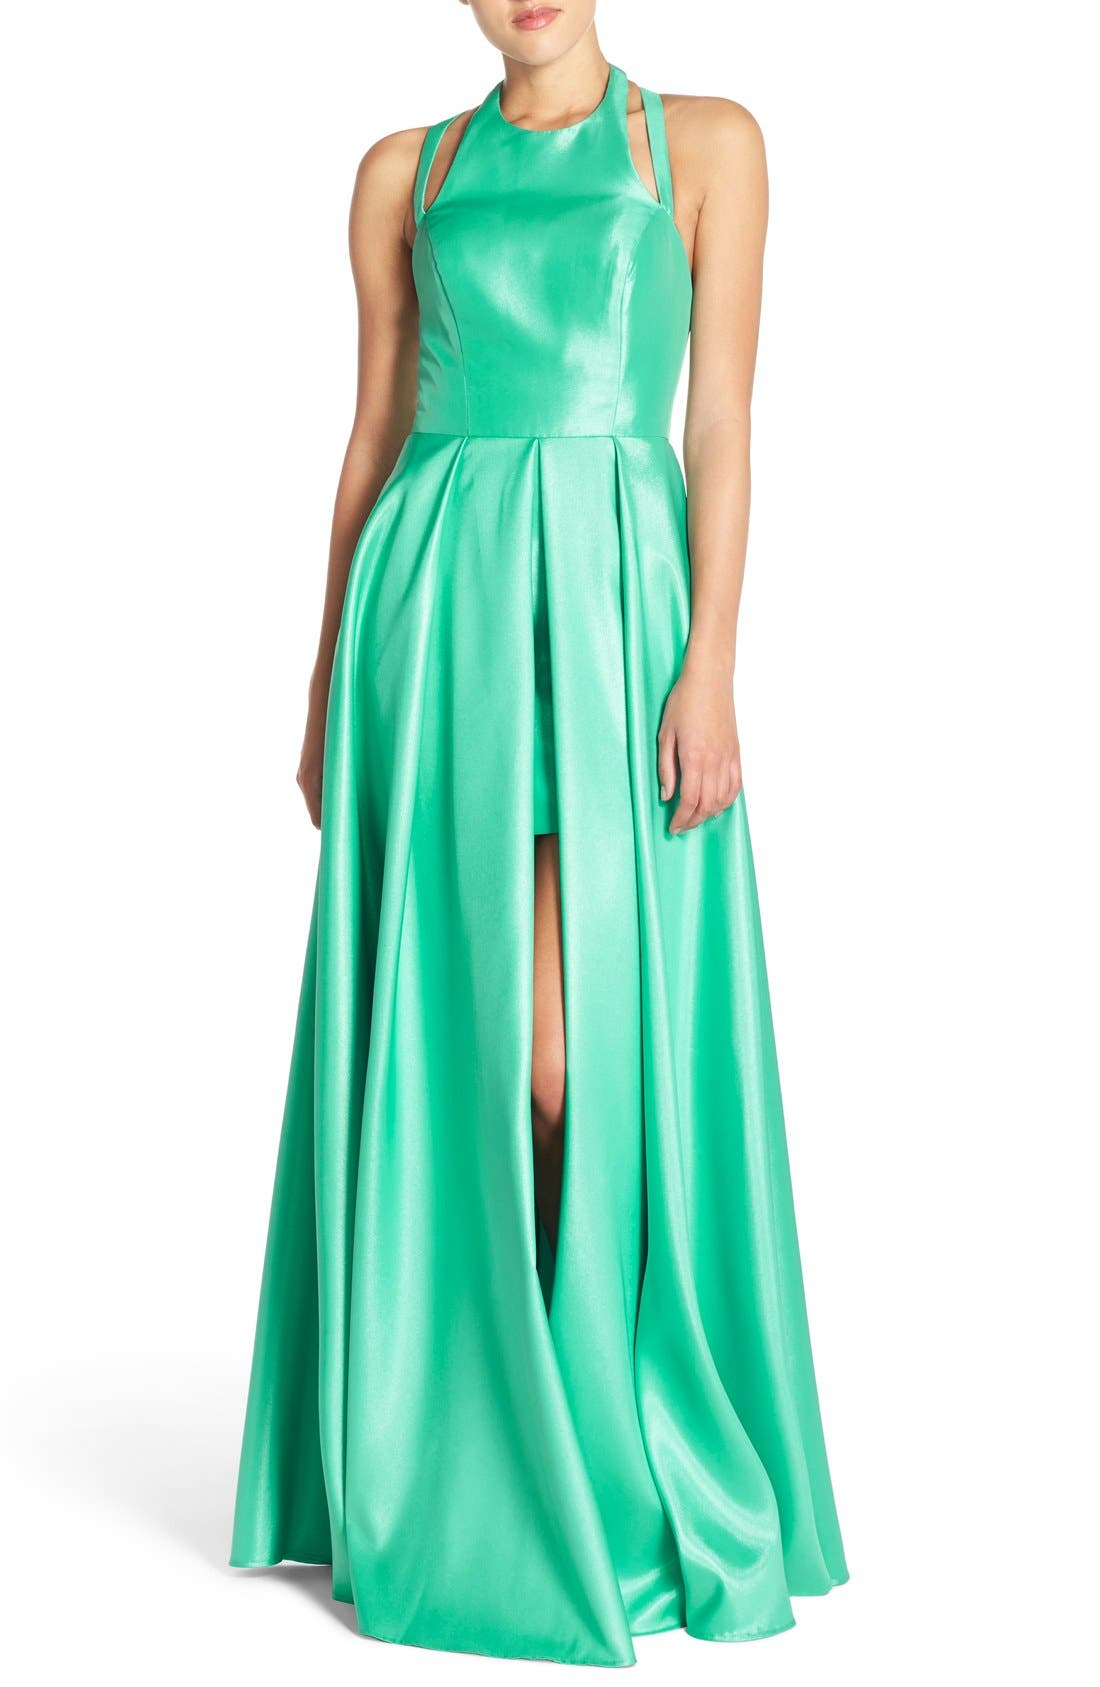 FAVIANA,                             Shimmer Satin Halter Gown with Underskirt,                             Main thumbnail 1, color,                             439